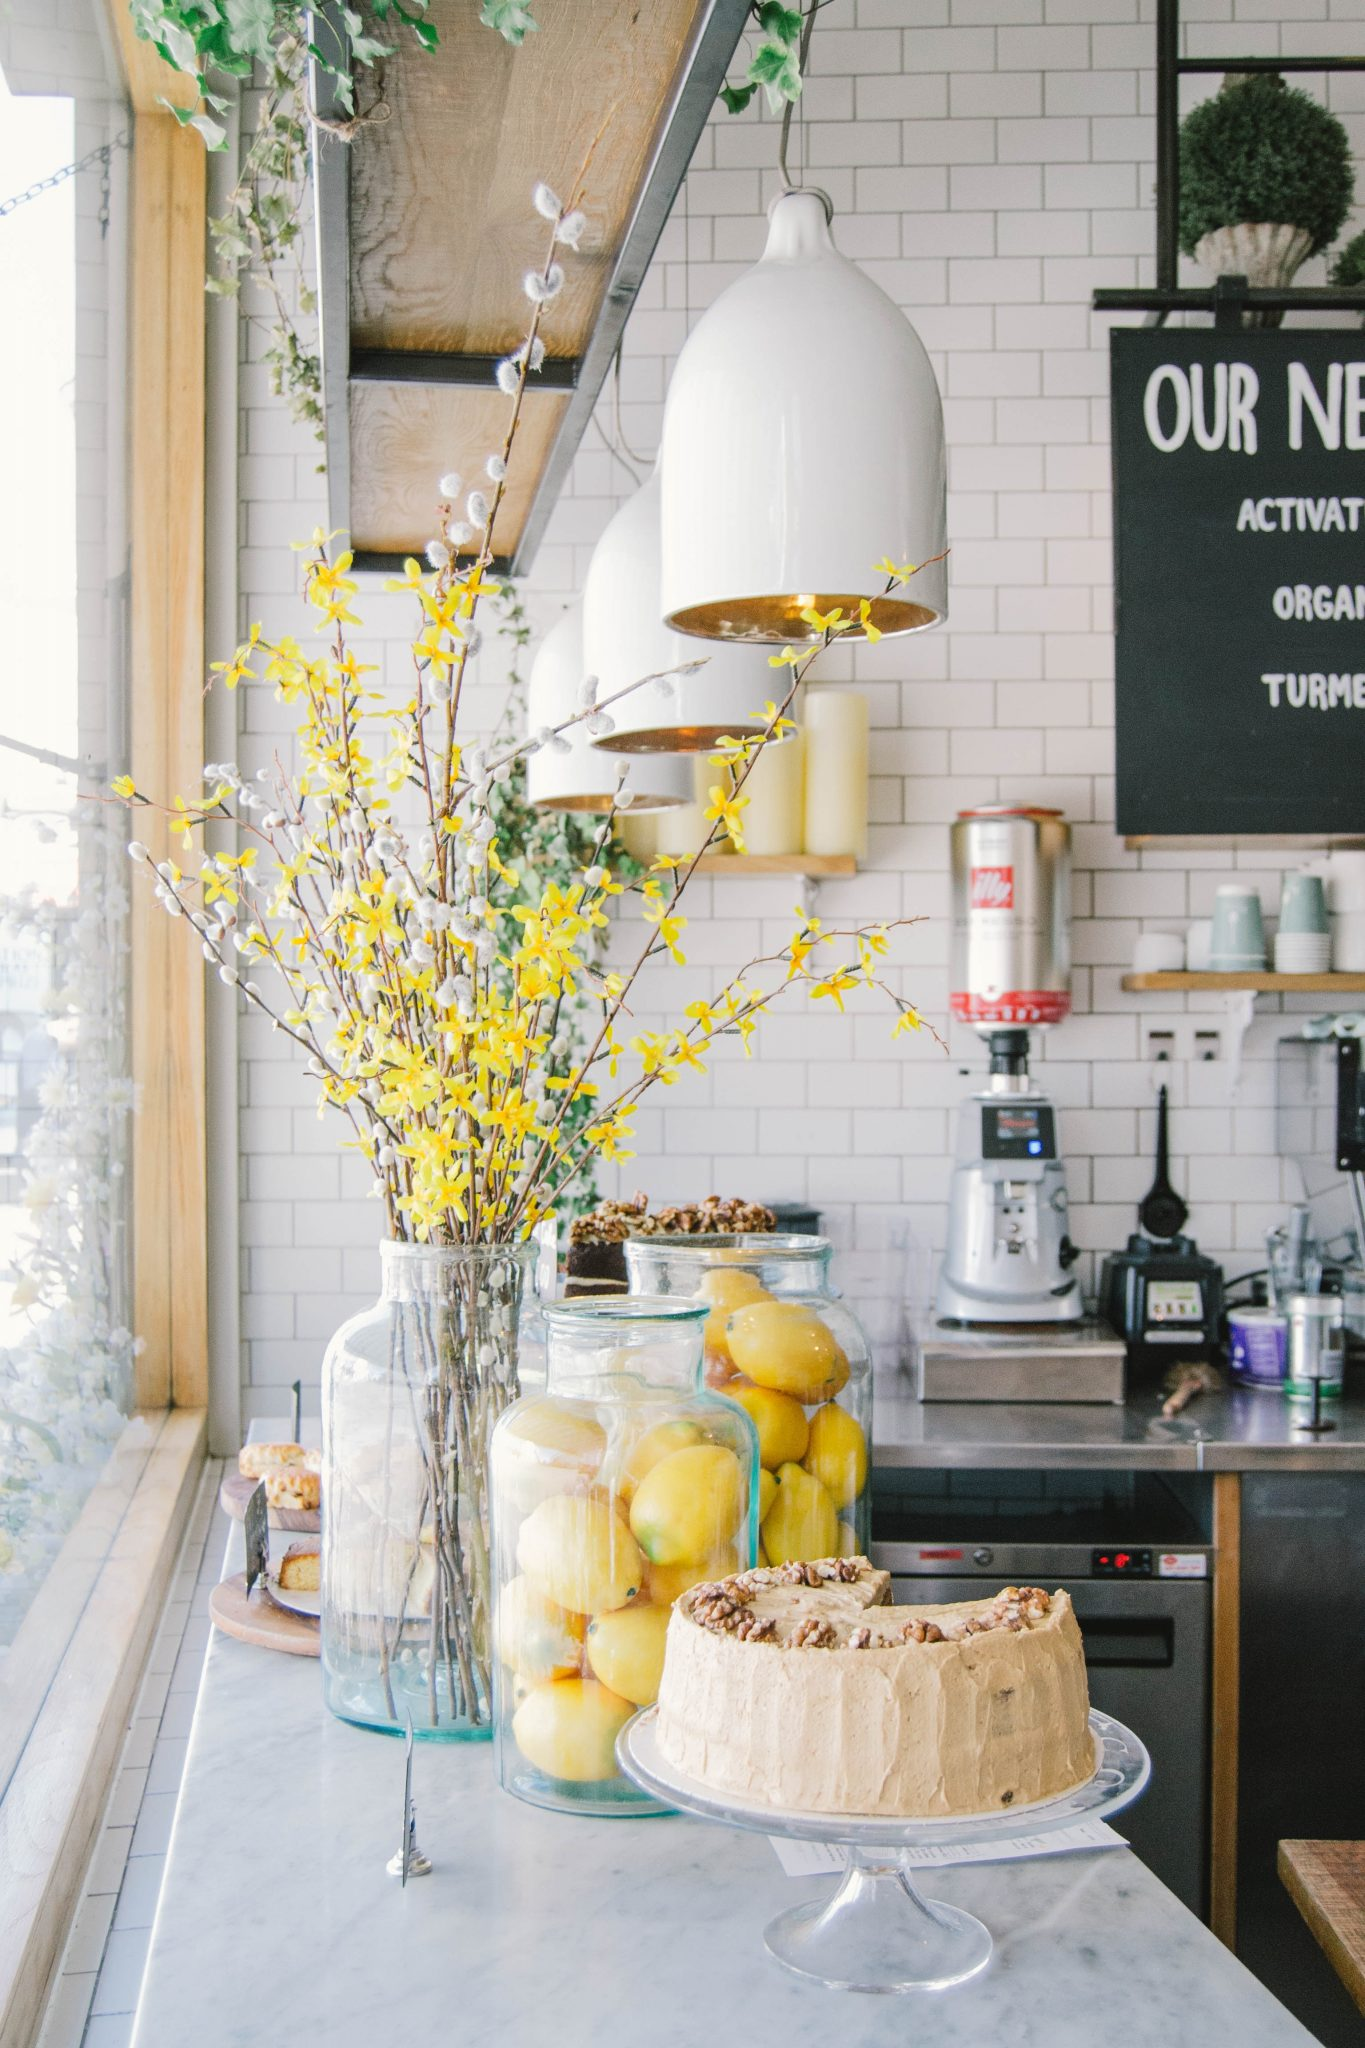 23 Impressive Kitchen Counter Decor Ideas For Styling Your Kitchen